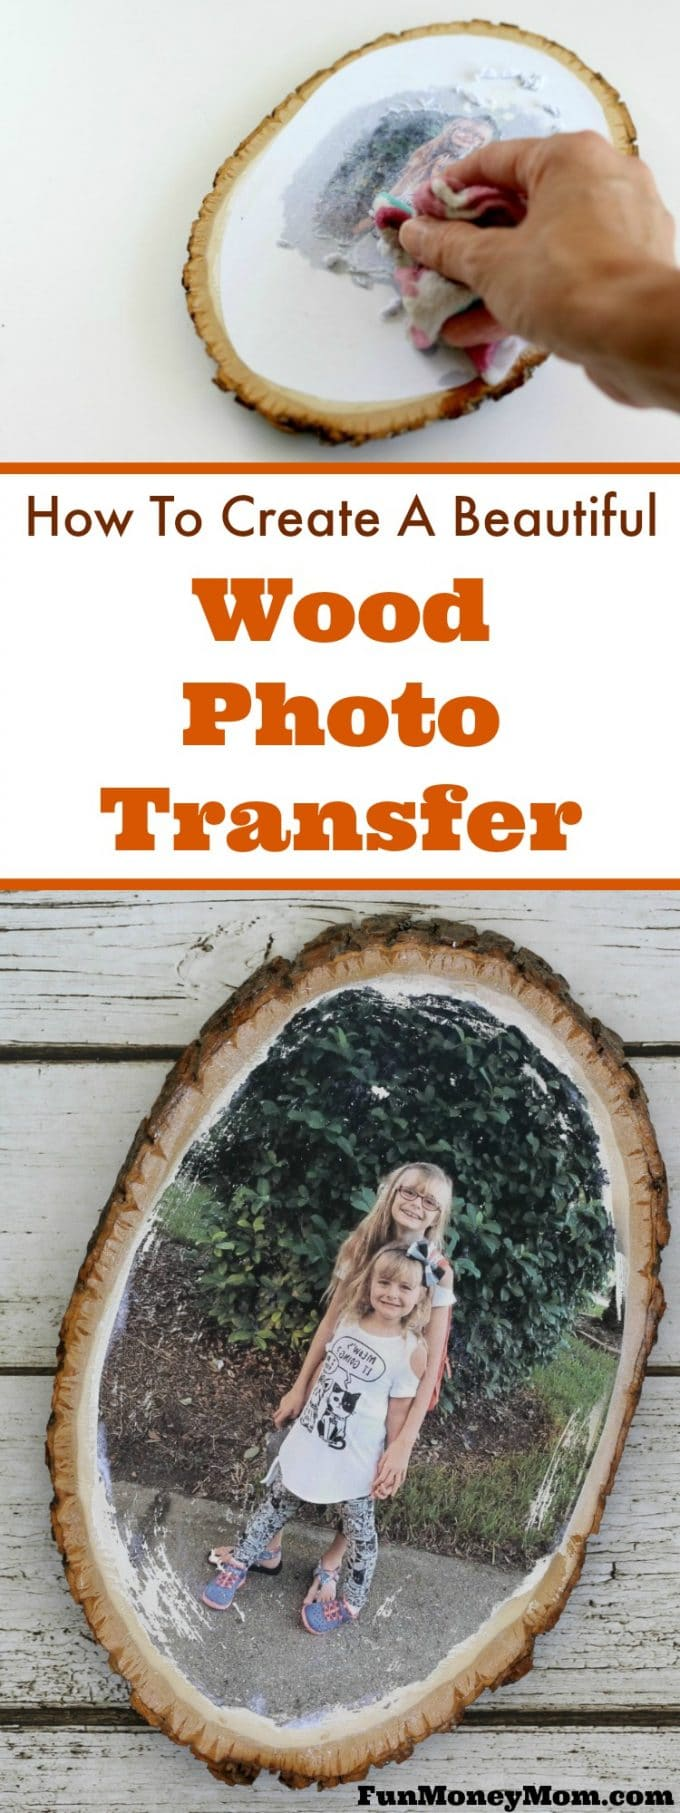 Whether you're looking for a creative photo gift, a new way to display family photos or just some fun personalized home decor, this DIY Wood Photo Transfer is perfect (and you won't believe how easy it is).